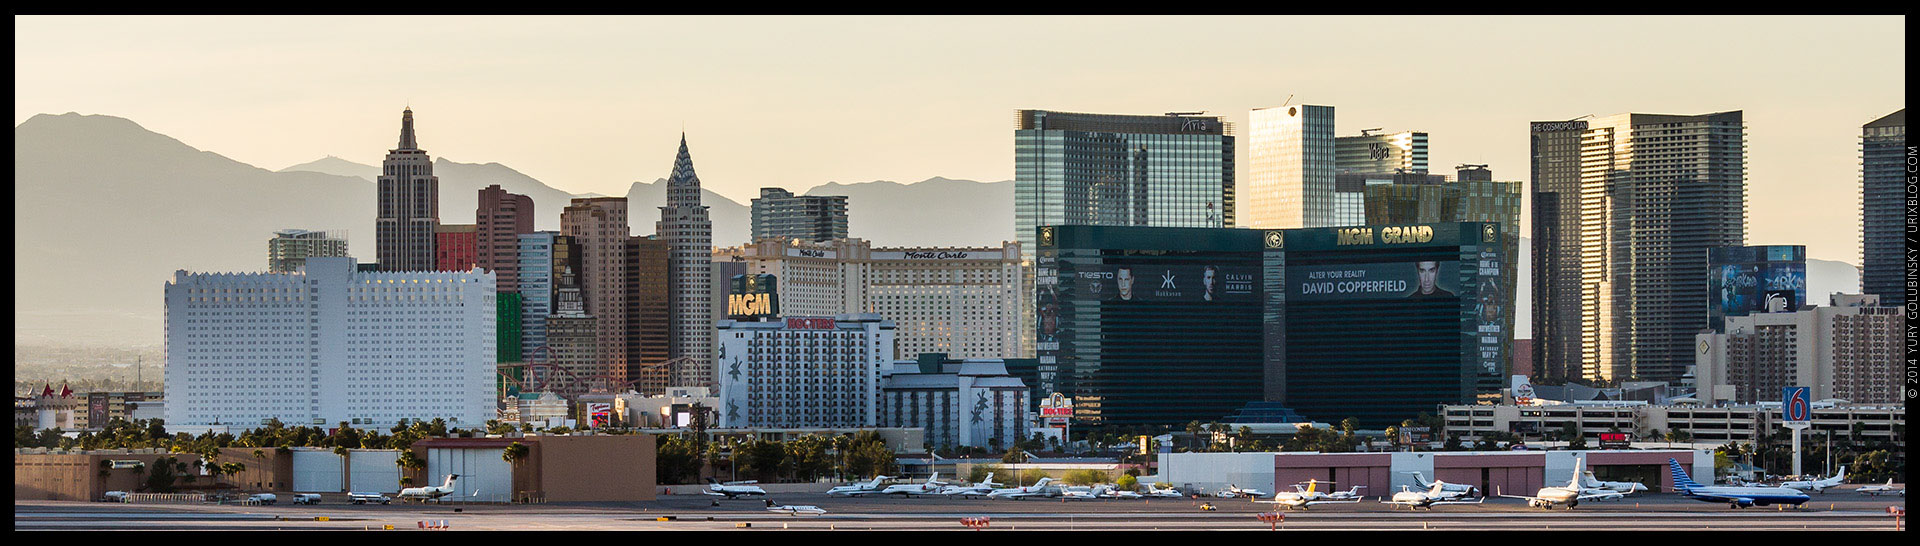 New York, MGM, Aria, casino, 2014, LAS, Las Vegas McCarran International airport, strip, LV, Clark County, USA, Nevada, panorama, horizon, city